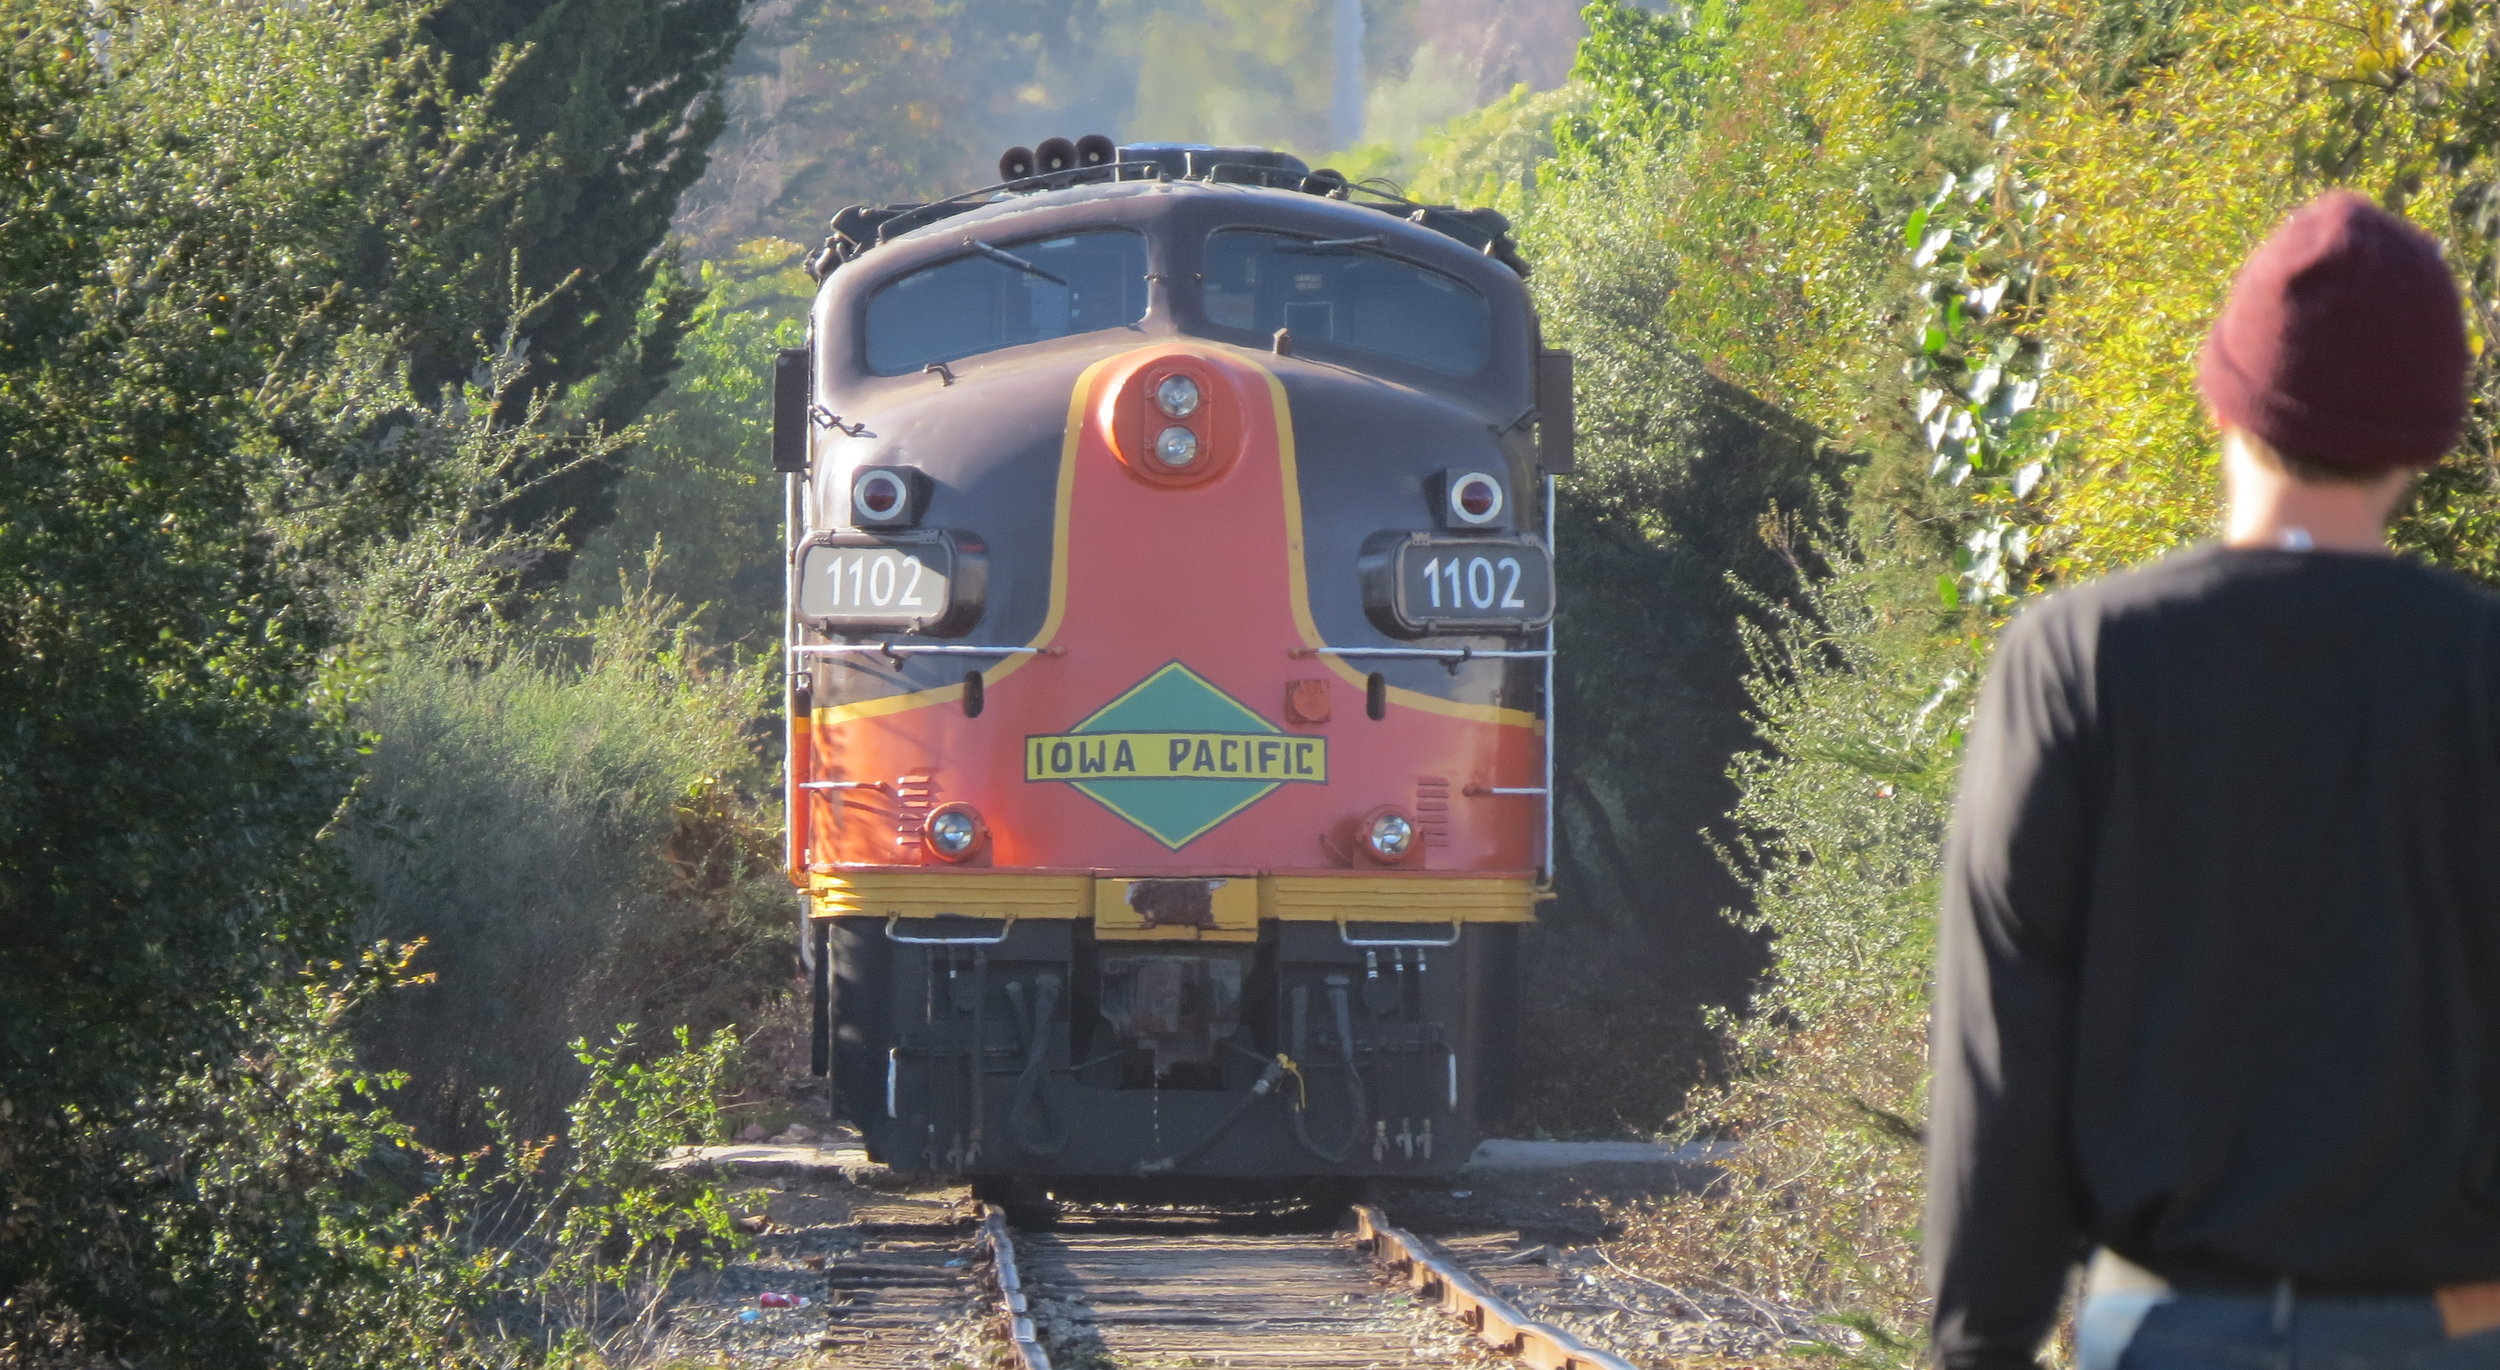 News trail now santa cruz county coastal corridor train infrastructure would be replaced for passenger train malvernweather Images